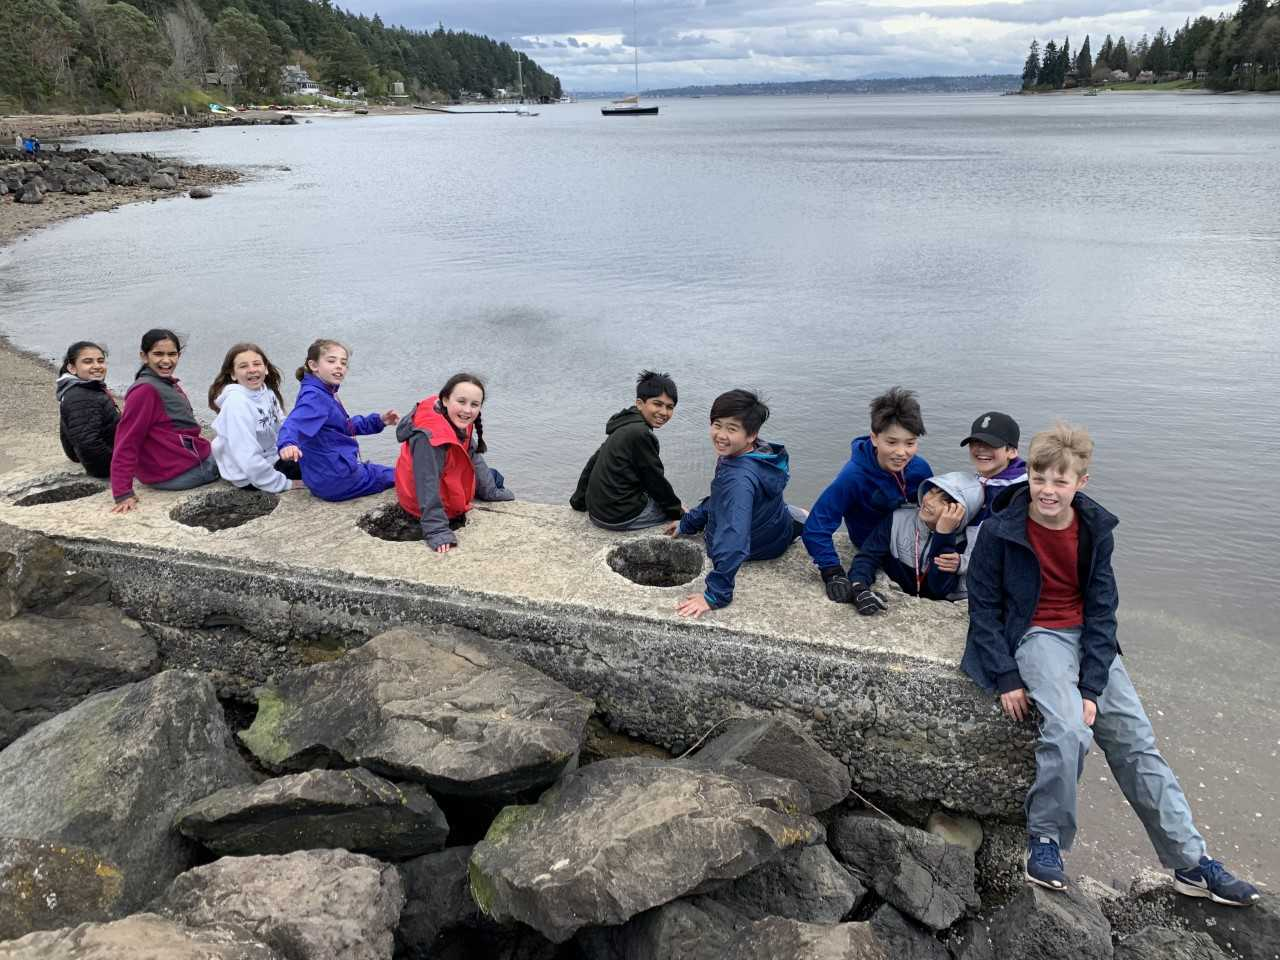 School Overnight Program students sit in a row at Blakely Harbor.